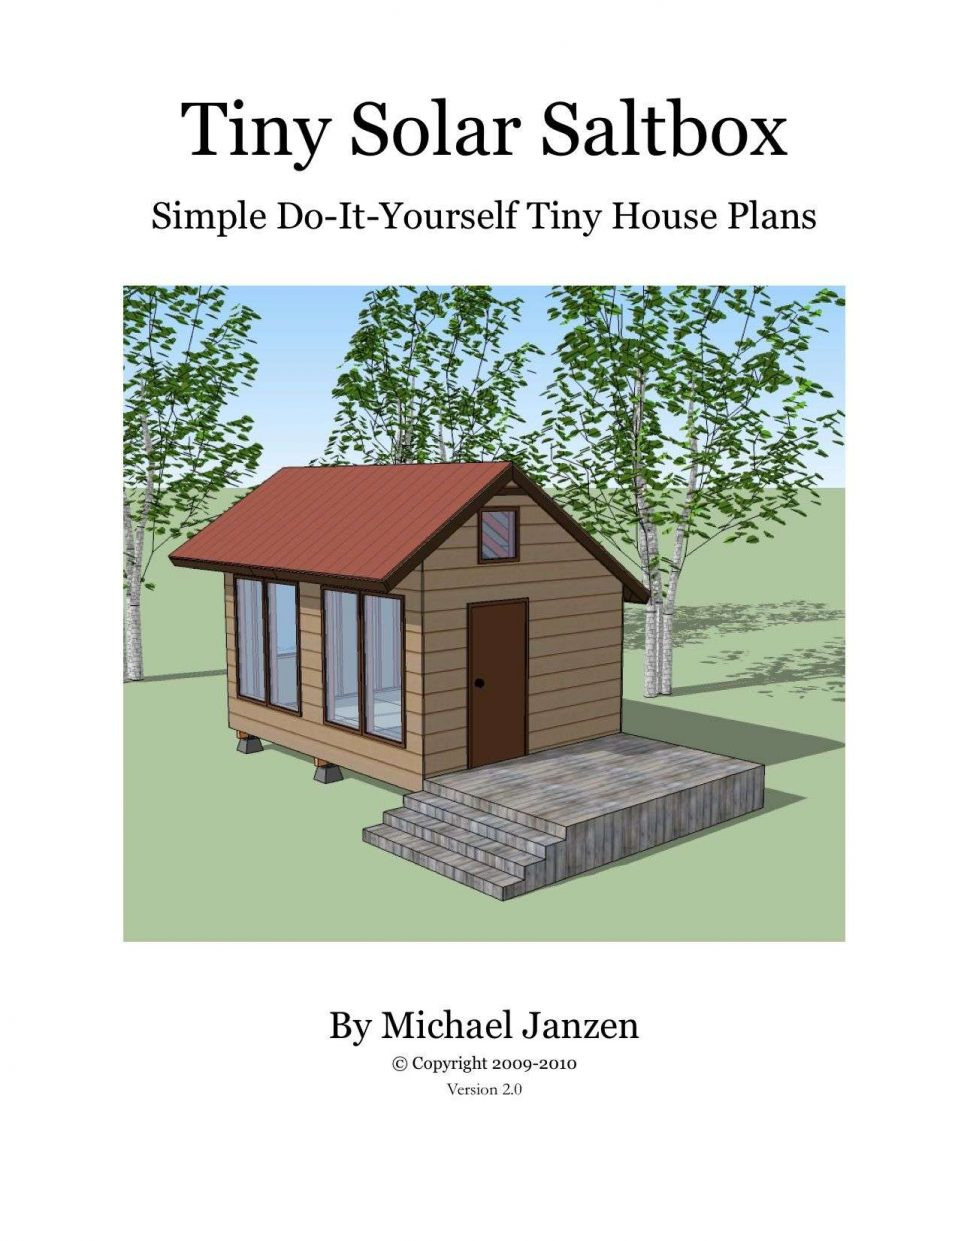 home and interior ideas images of saltbox house floor plan for cottage small salt box design new plansiny solar cover 958x1241